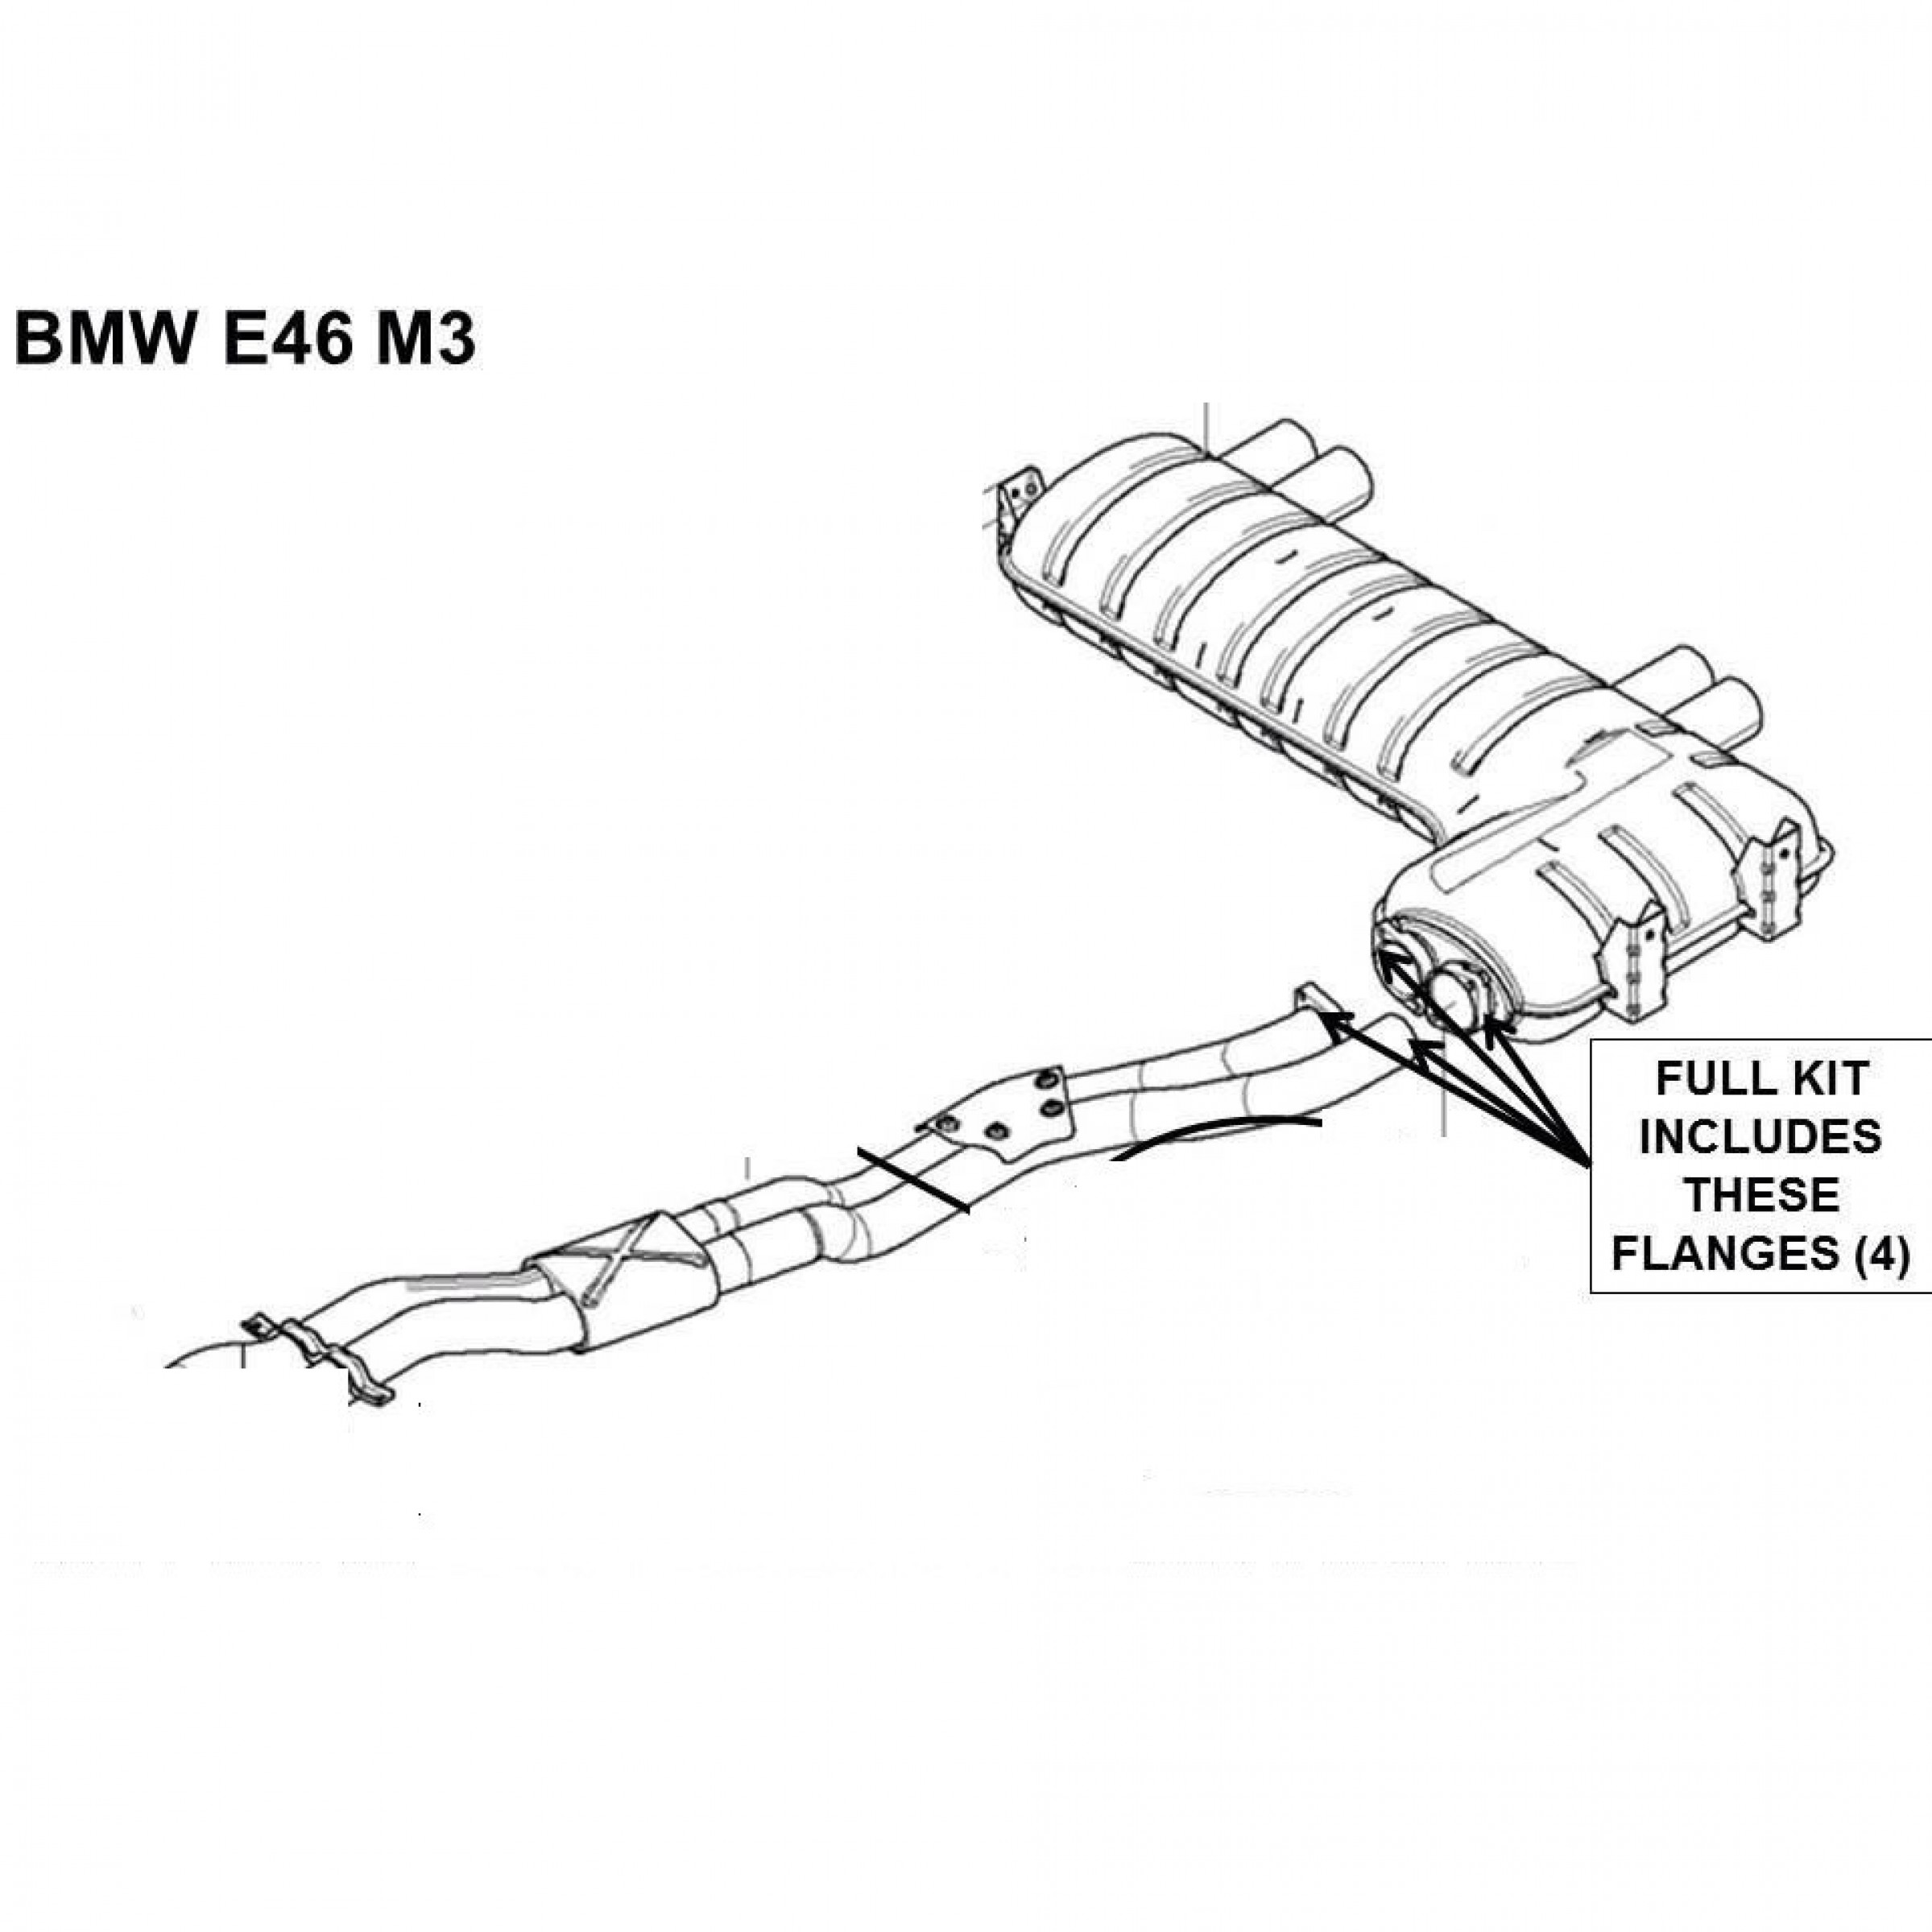 Mazda Engine Diagram likewise OT7t 5522 likewise Bmw M3 Exhaust Flange Repair Kit E46 likewise 98 Honda Accord Evap Questions Please Help 62874 furthermore Imagranger01. on saab 9 3 interior